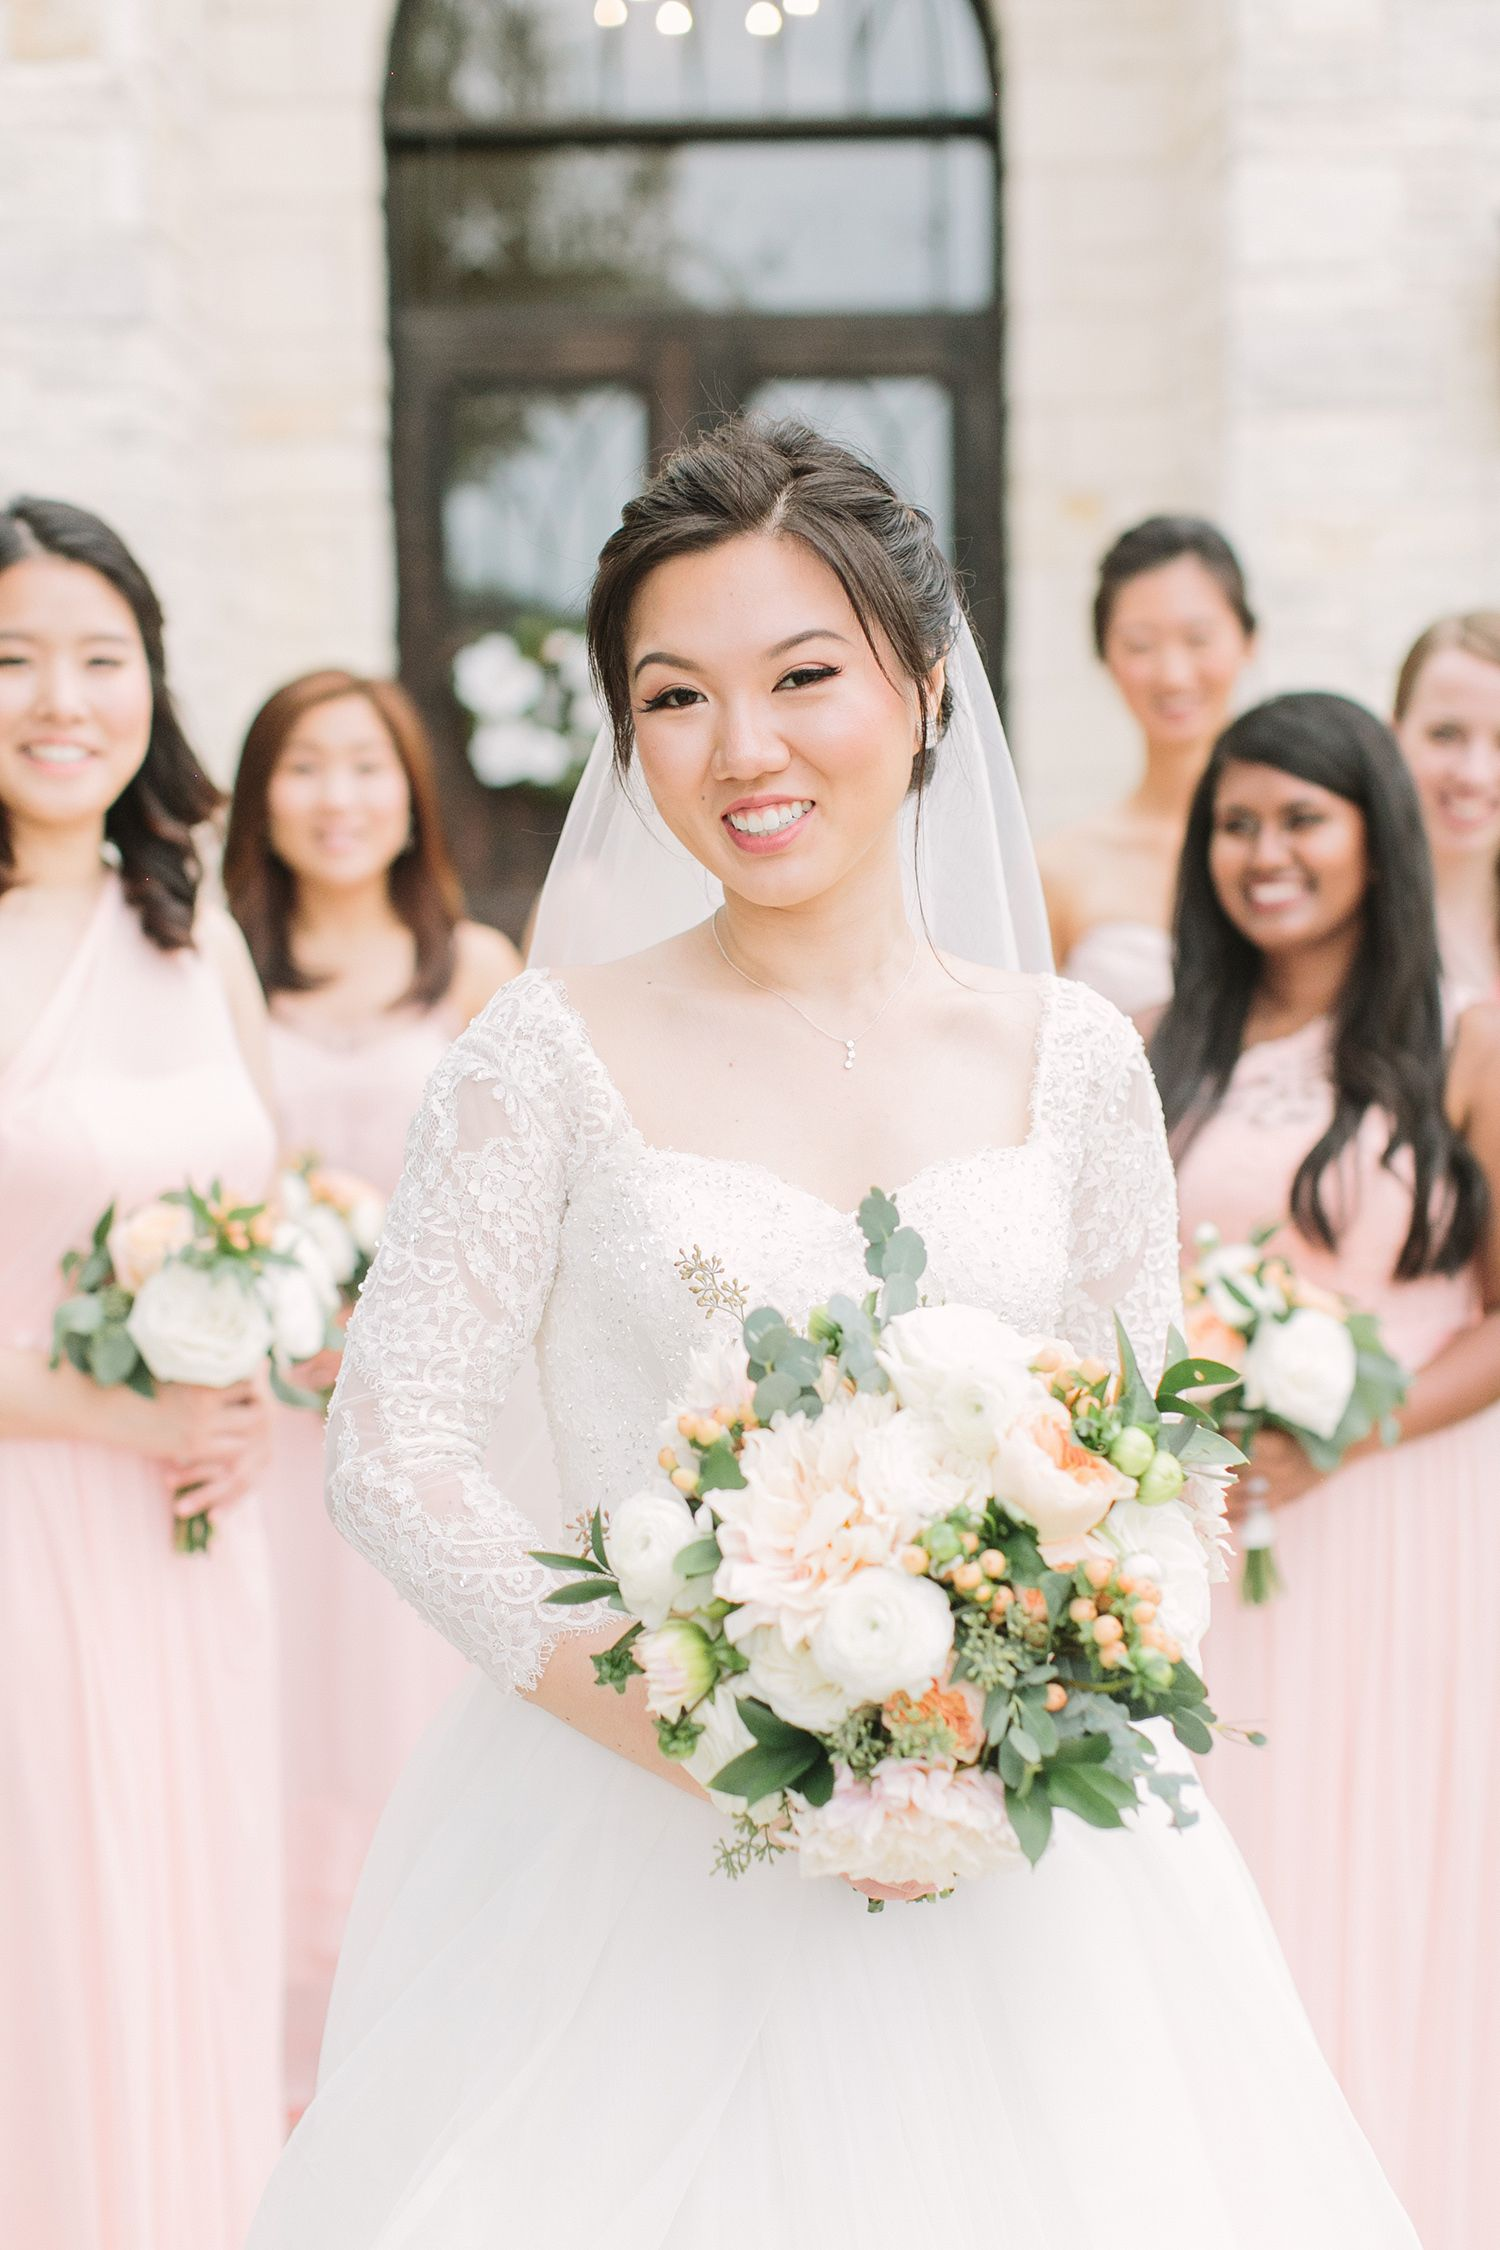 Bridal Bouquet Updo Lace Sleeves Blue Pink Gold Peach Wedding At Briscoe Manor Bridal Beauty Bright Wedding Peach Wedding